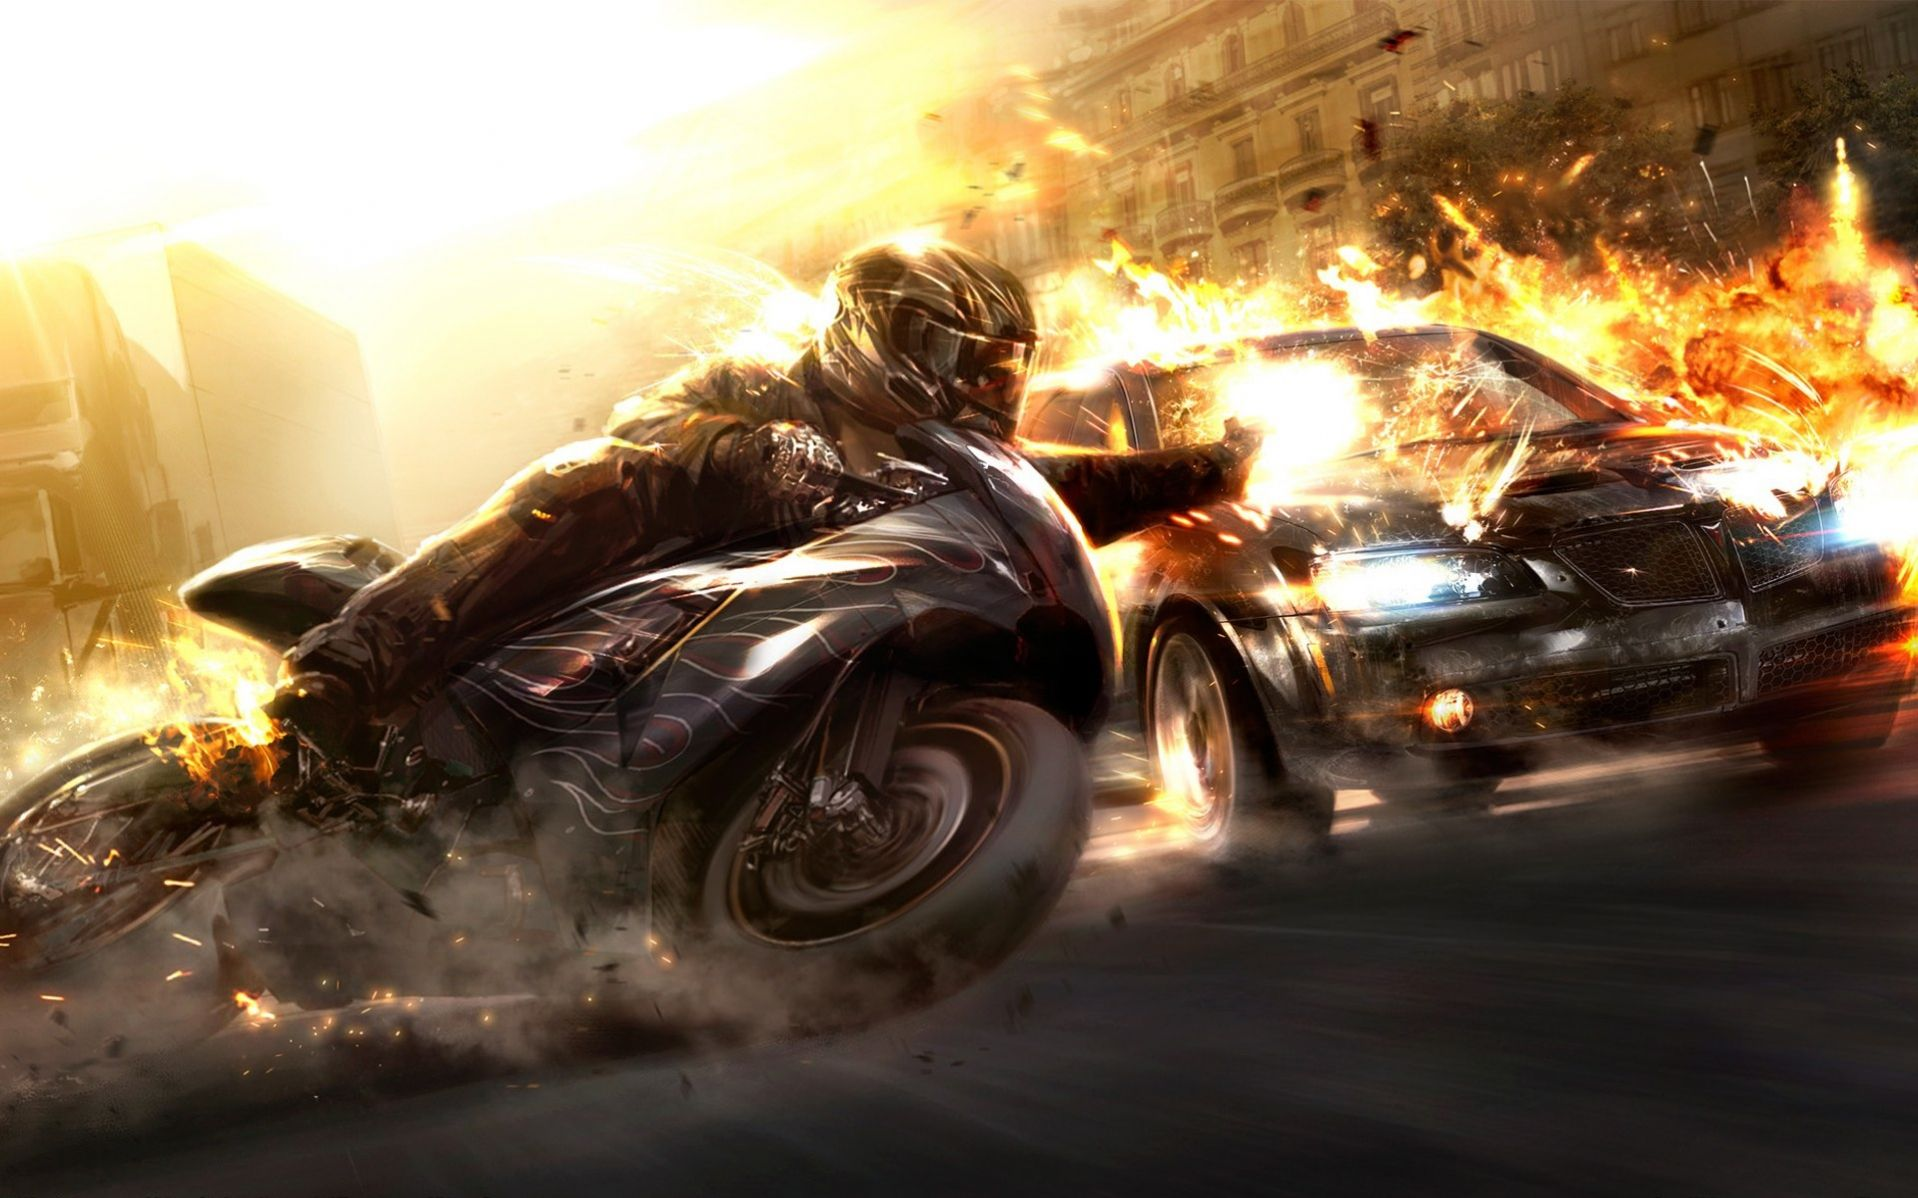 Wheelman Wallpaper Car Wallpapers Motorcycle Wallpaper